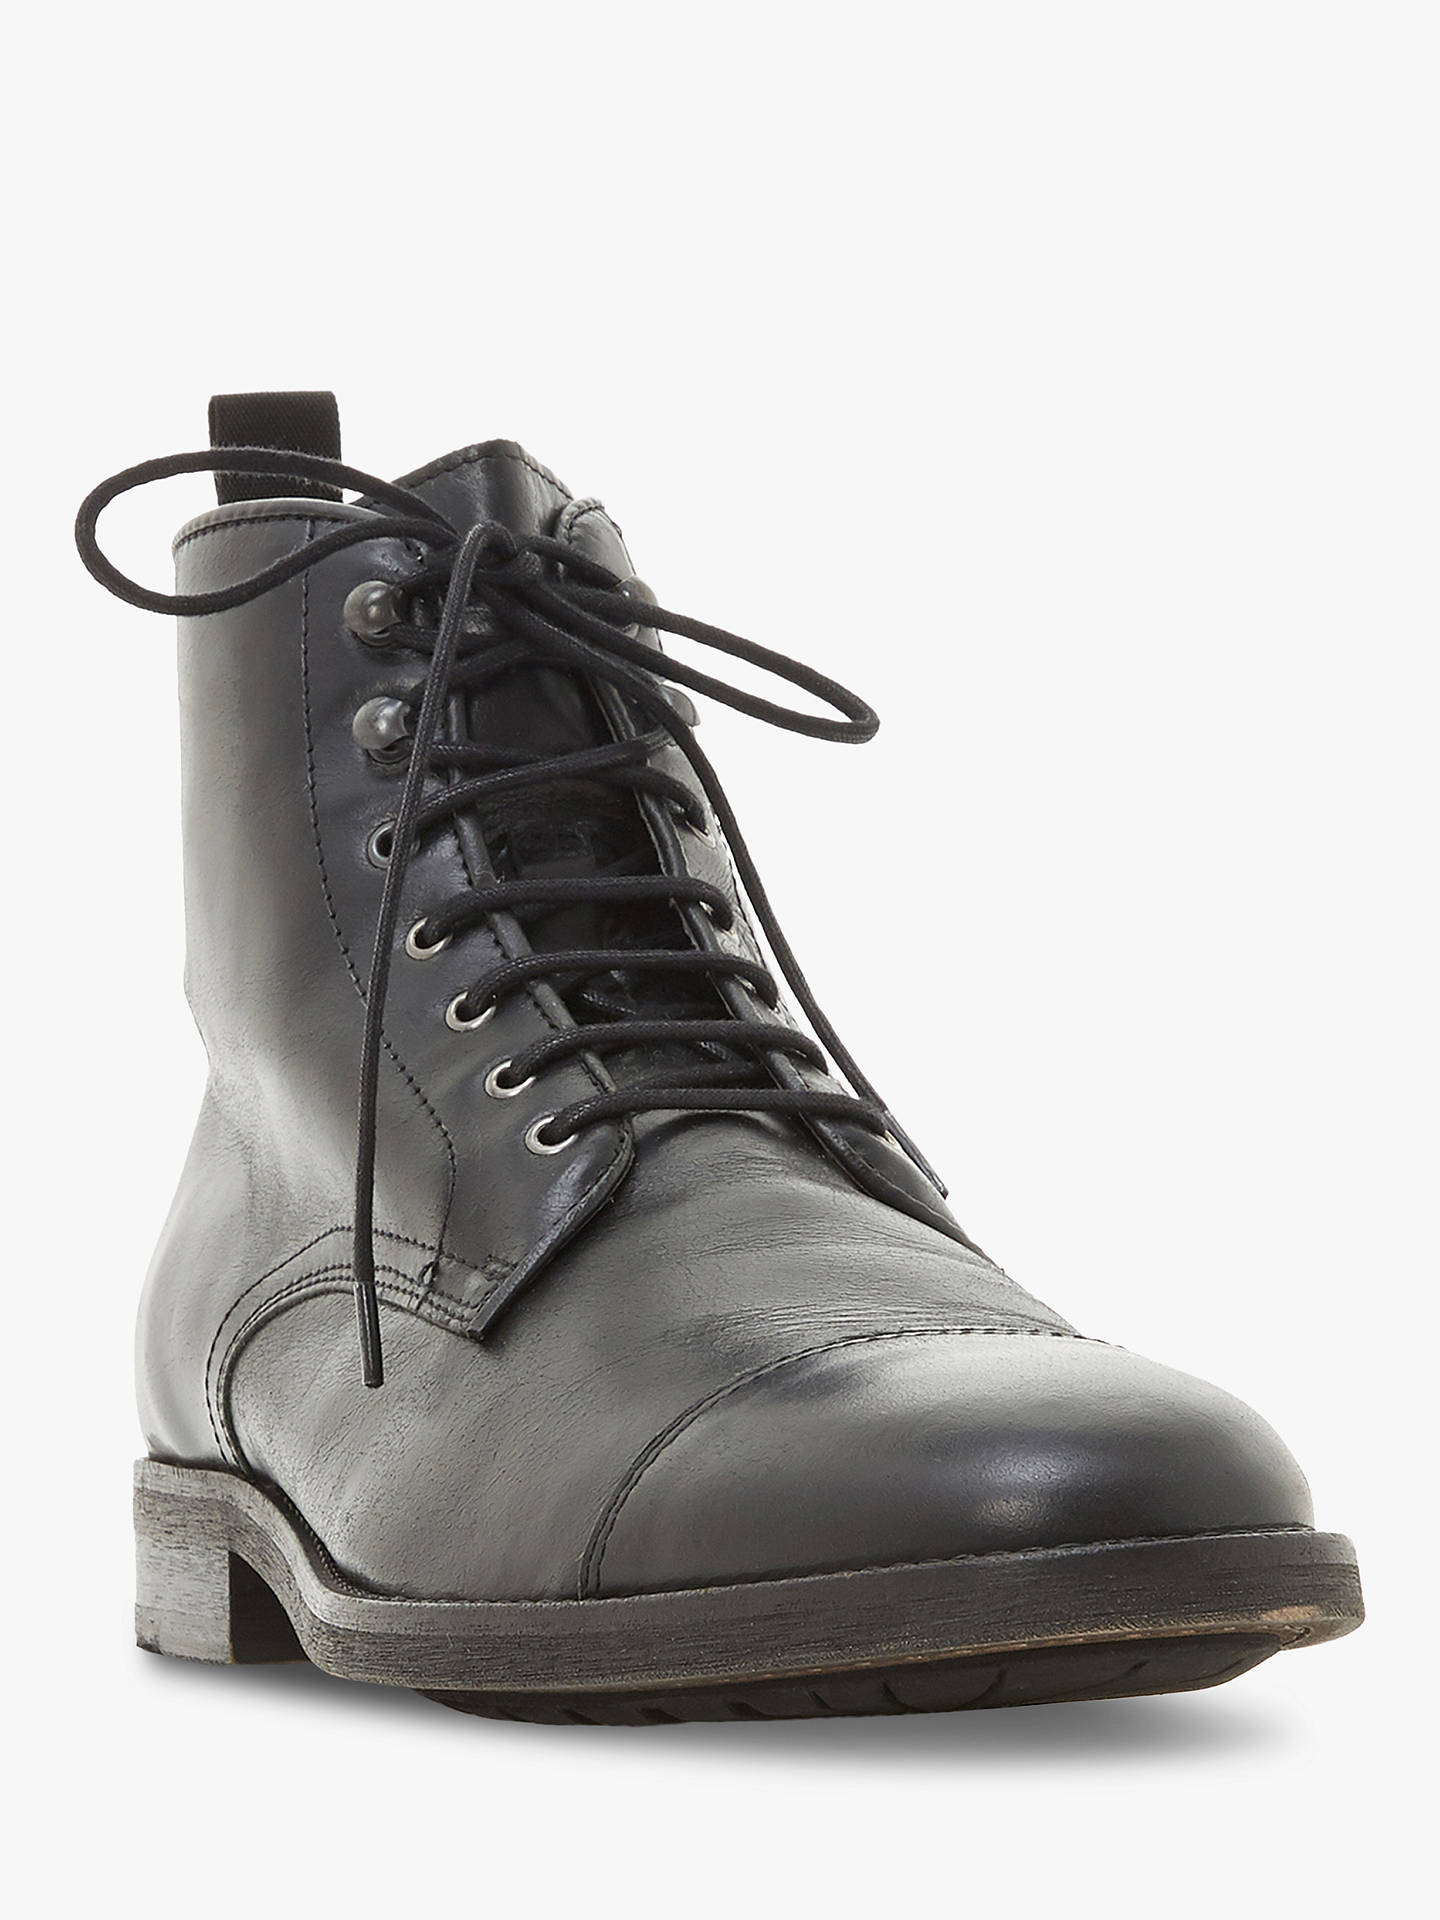 Buy Bertie Christchurch Worker Boots, Black, 6 Online at johnlewis.com